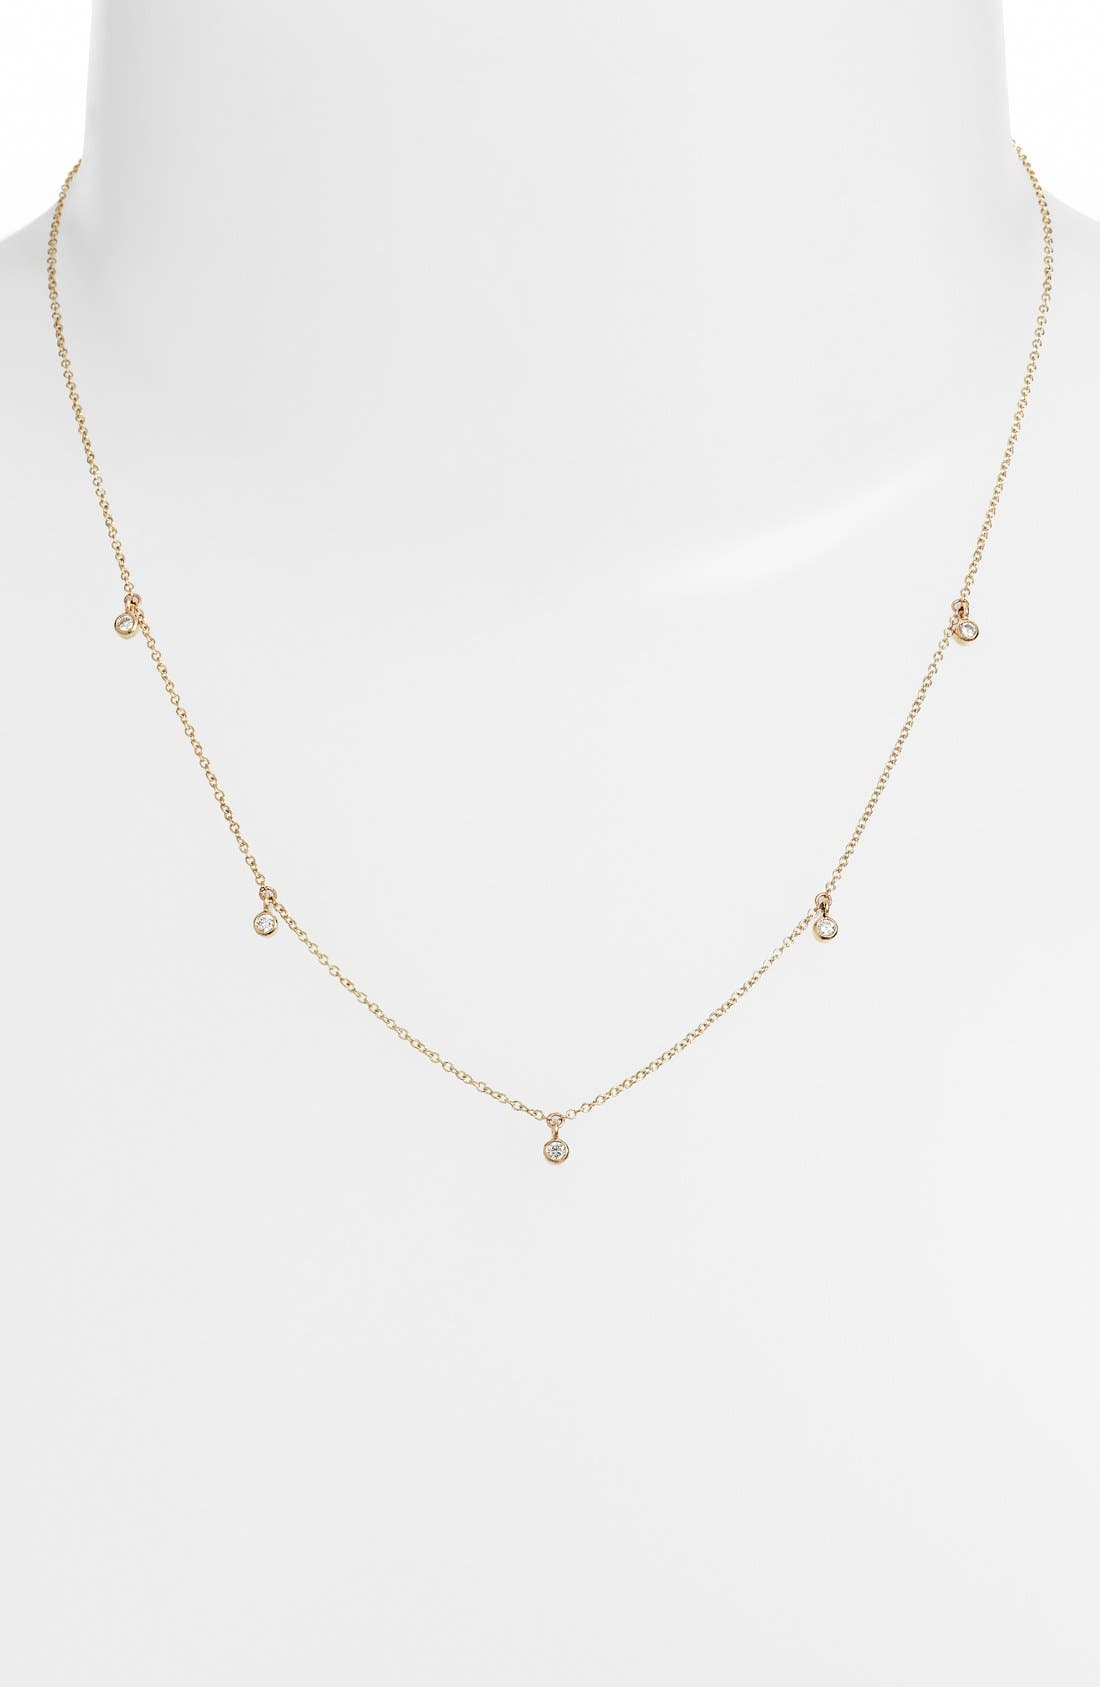 Diamond Strand Necklace,                             Main thumbnail 1, color,                             Yellow Gold